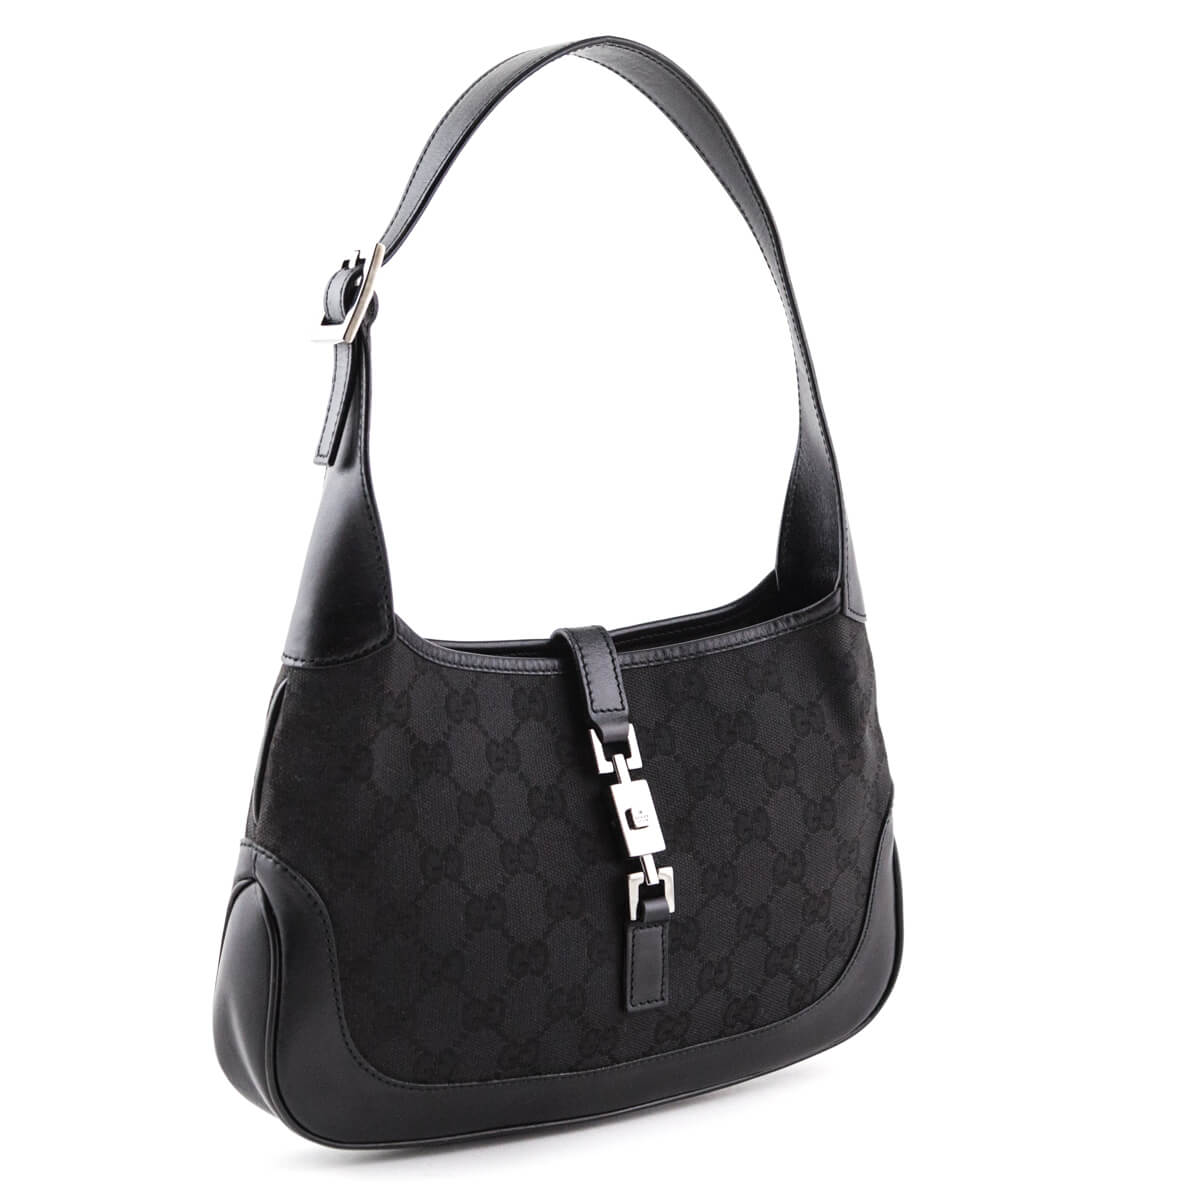 ... Gucci Black Monogram Canvas Small Jackie Hobo bag - LOVE that BAG -  Preowned Authentic Designer ... 8a5b82afec4fa